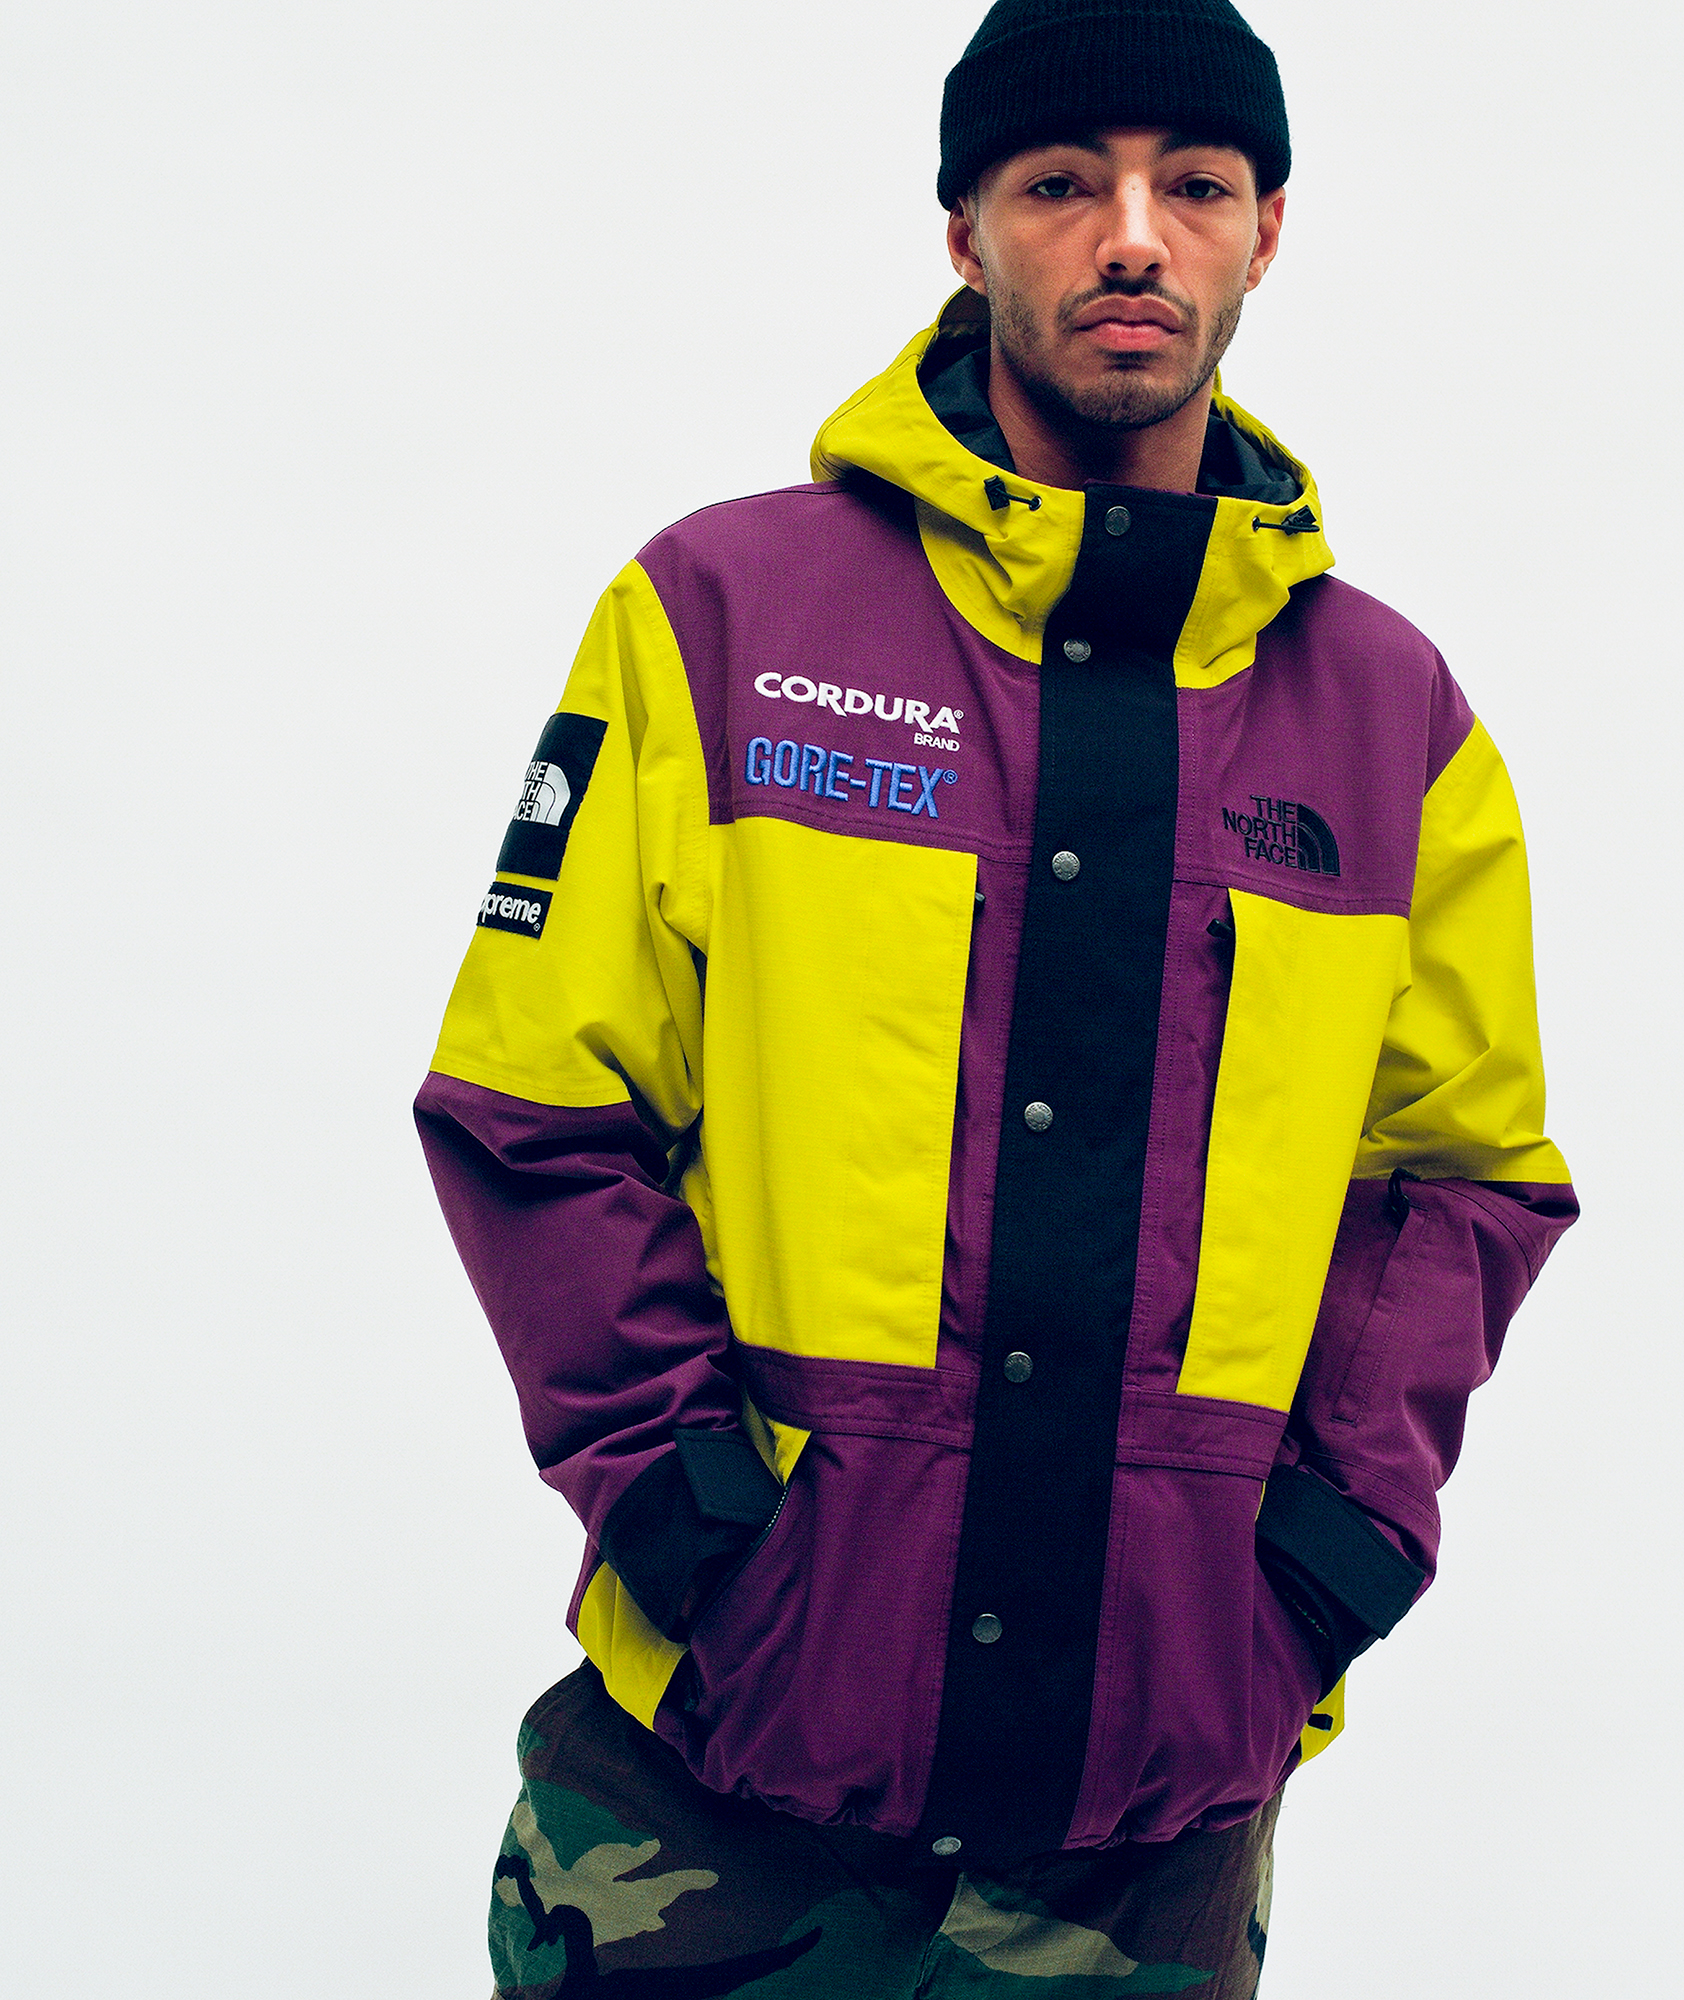 supreme-the-north-face-2018aw-2nd-delivery-release-20181201-week15-lookbook